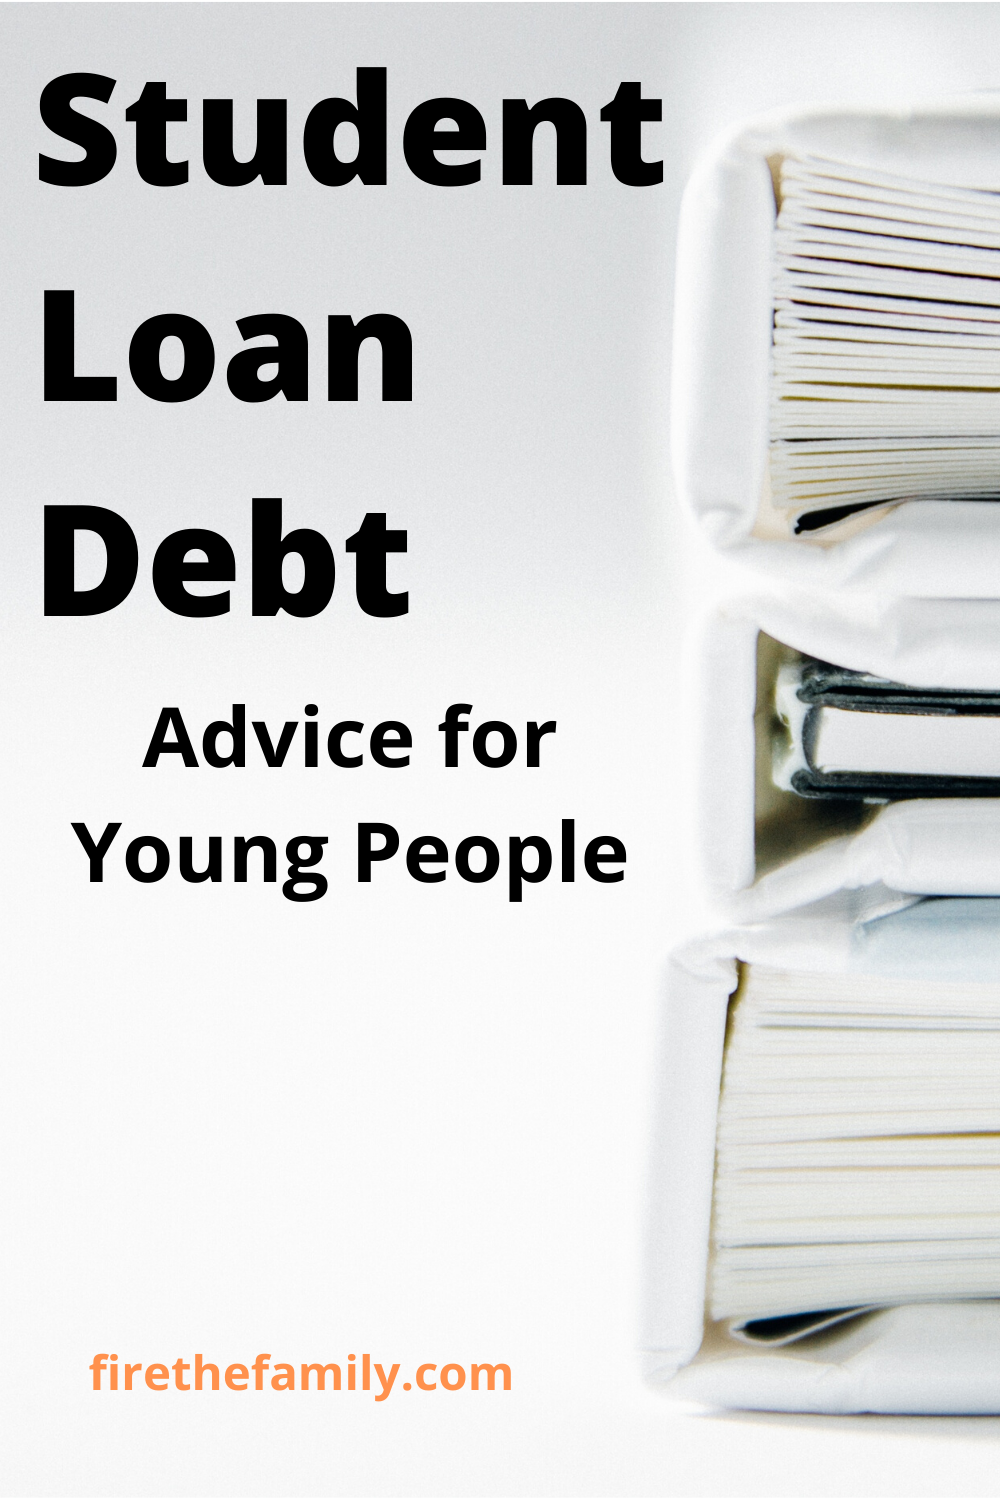 Student Loan Debt Advice.png